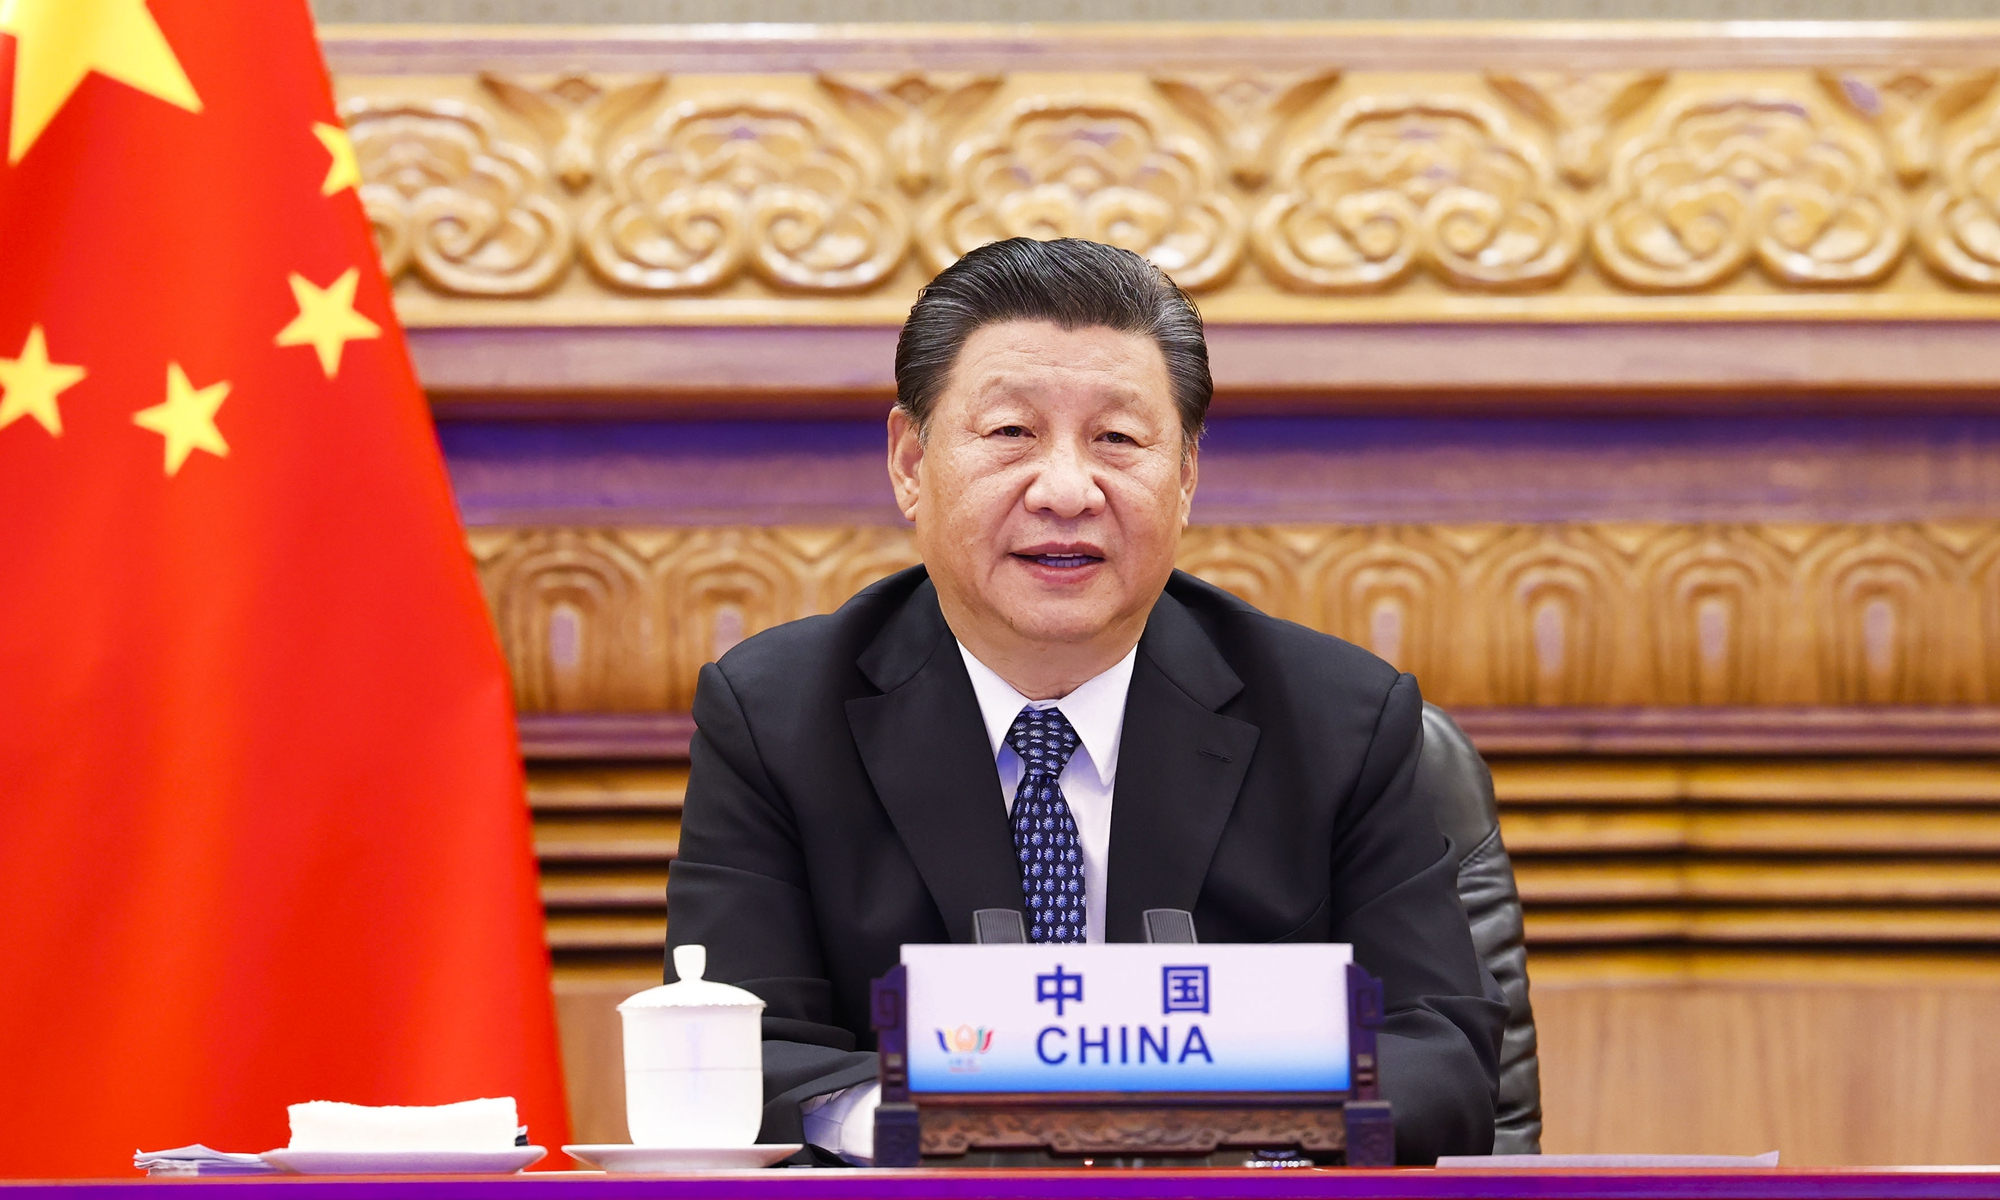 Chinese President Xi Jinping addresses the 13th BRICS Summit on Thursday via video link in Beijing. Photo: Xinhua